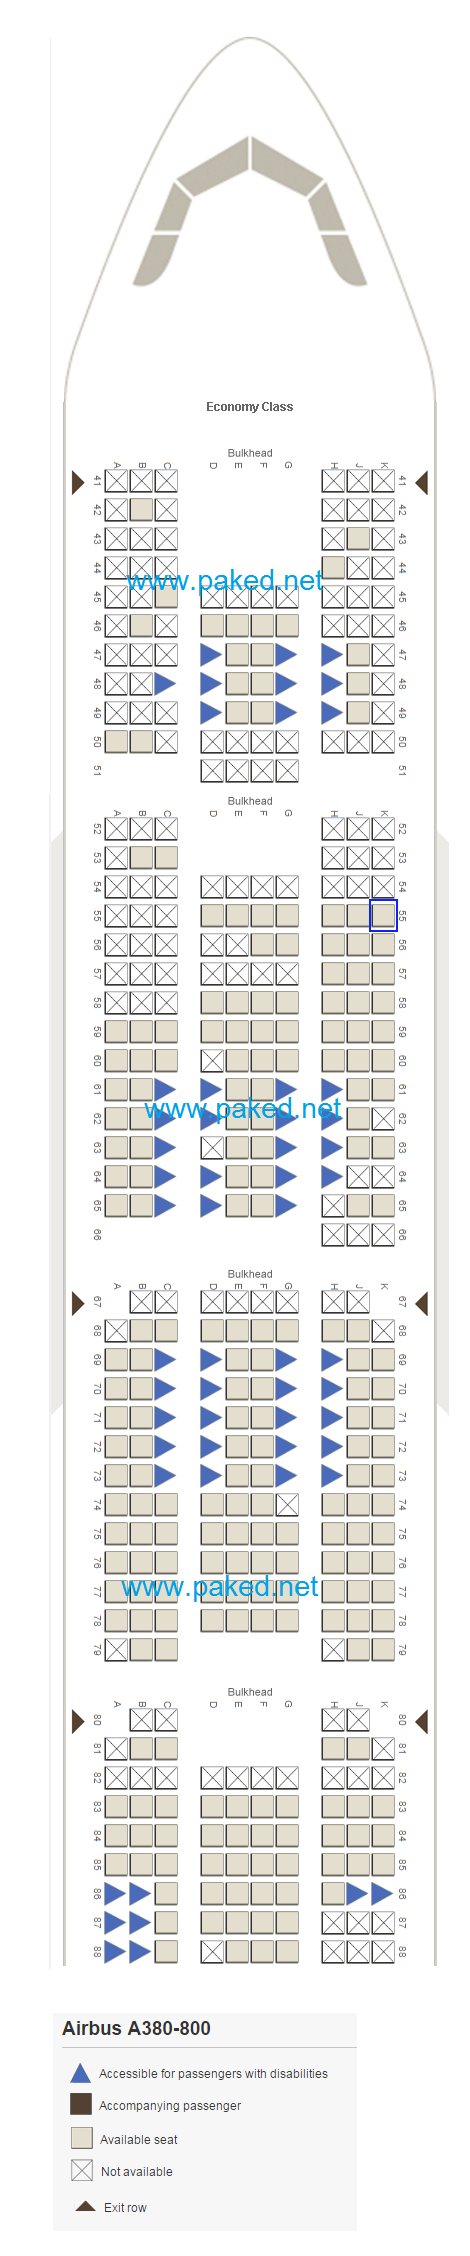 Emirates Seatmap Airbus A380 800 Economy Class